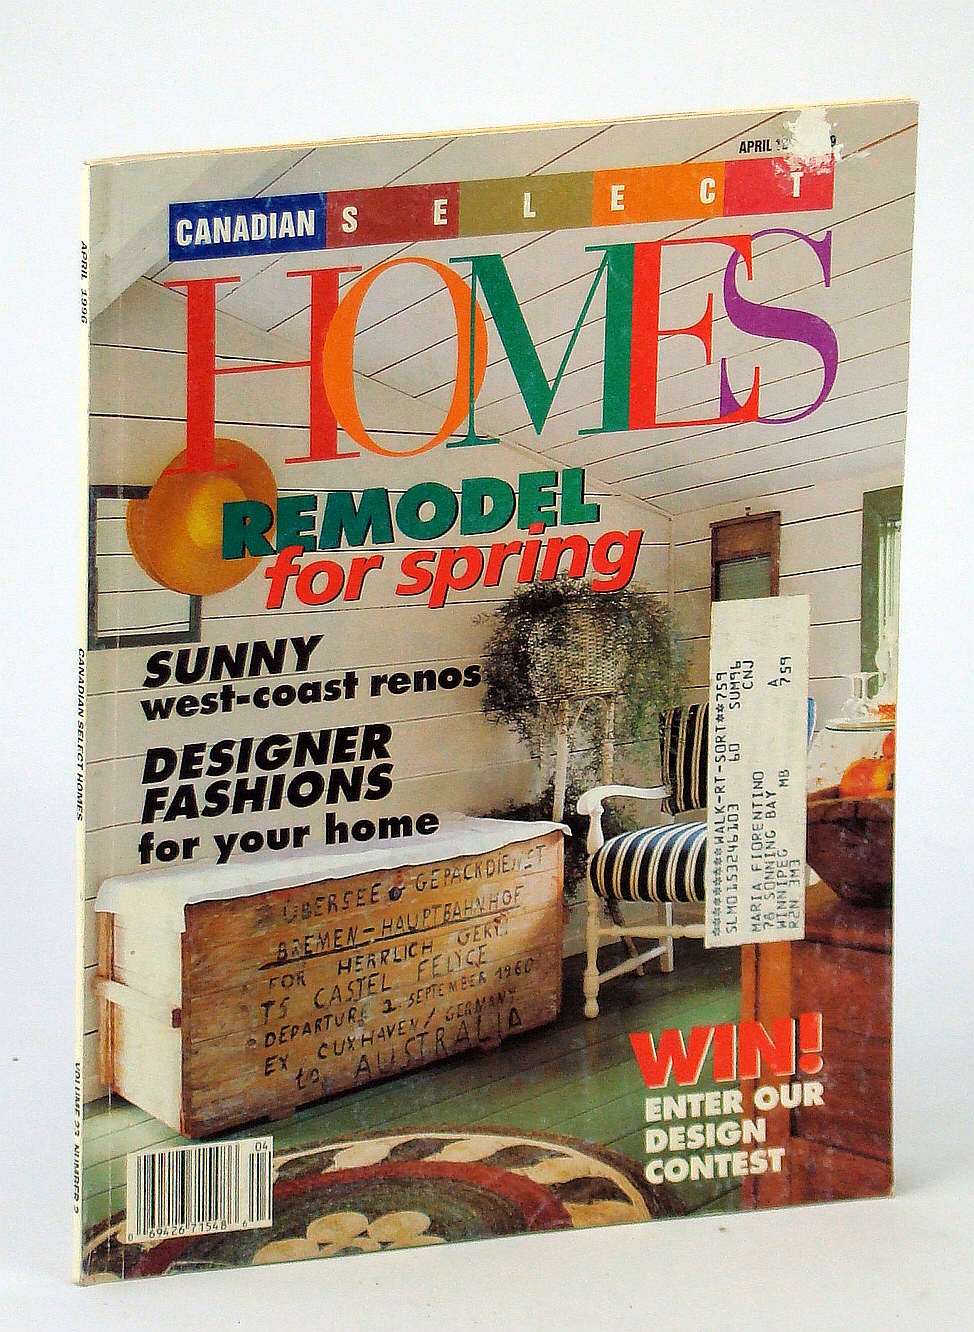 Image for Canadian Select Homes Magazine, April [Apr.] 1996, Vol. 23, No. 2 - Sunny West-Coast Renos